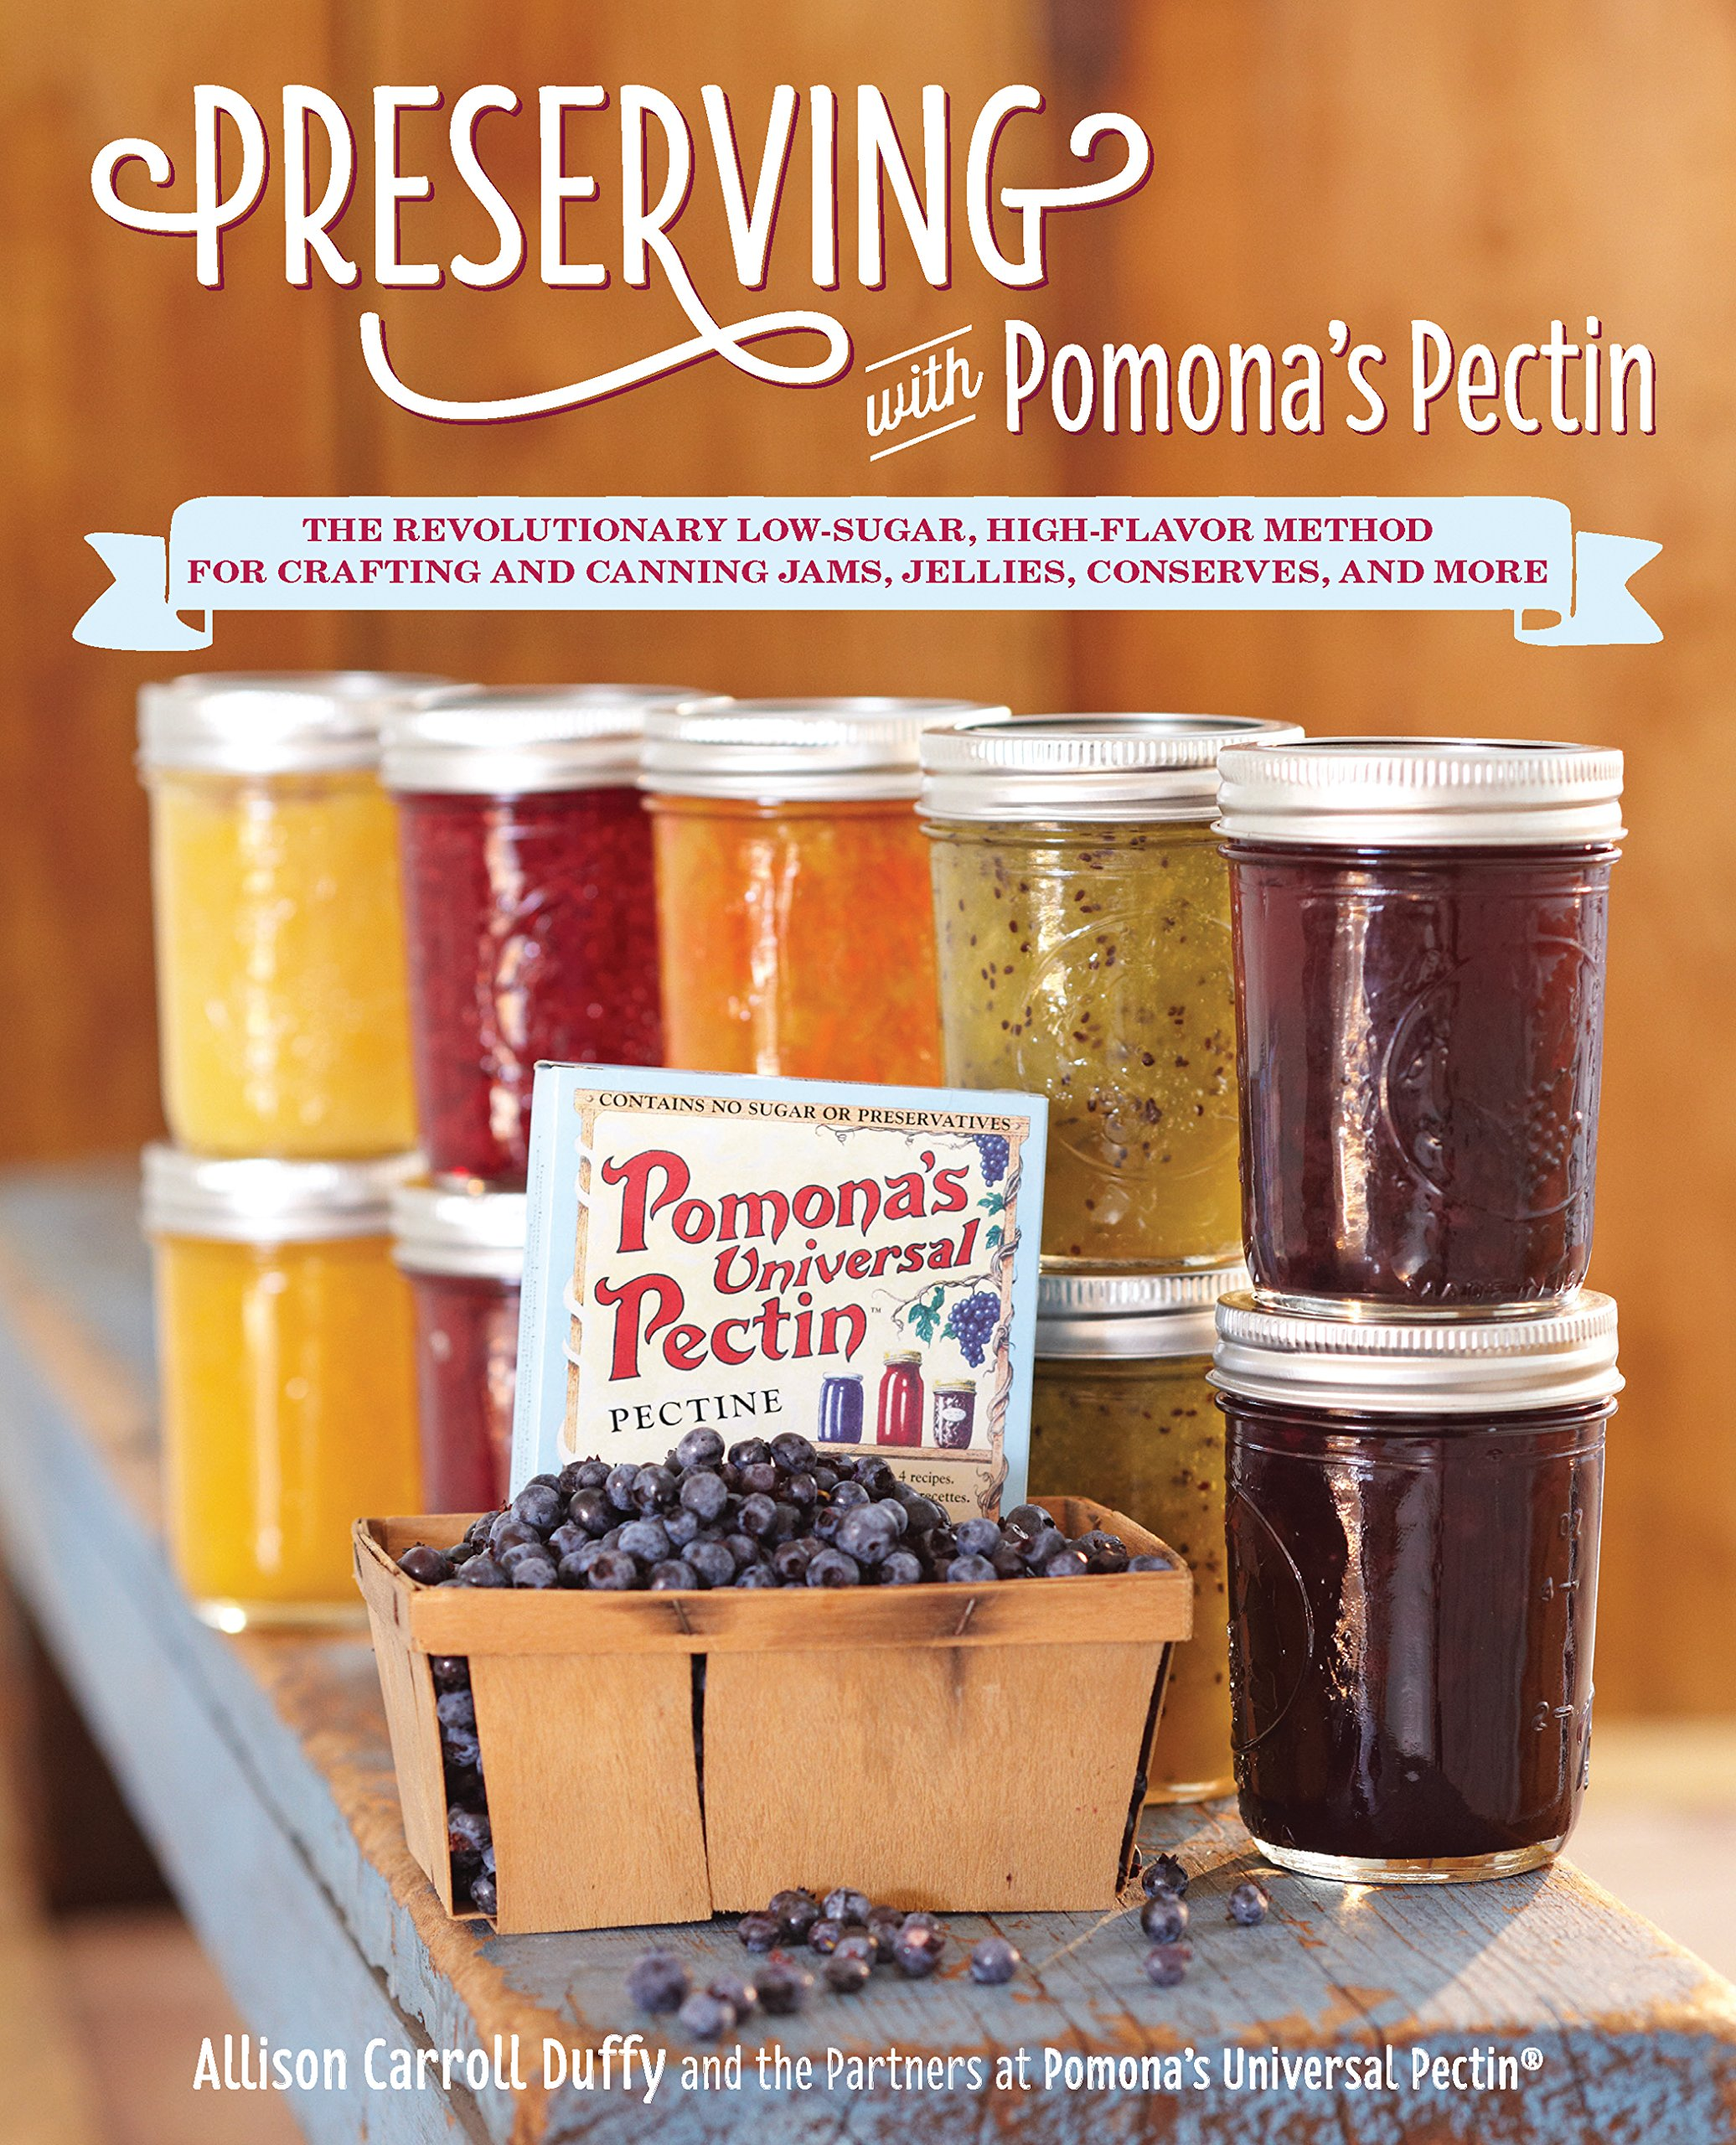 Download Preserving with Pomona's Pectin: The Revolutionary Low-Sugar, High-Flavor Method for Crafting and Canning Jams, Jellies, Conserves, and More pdf epub